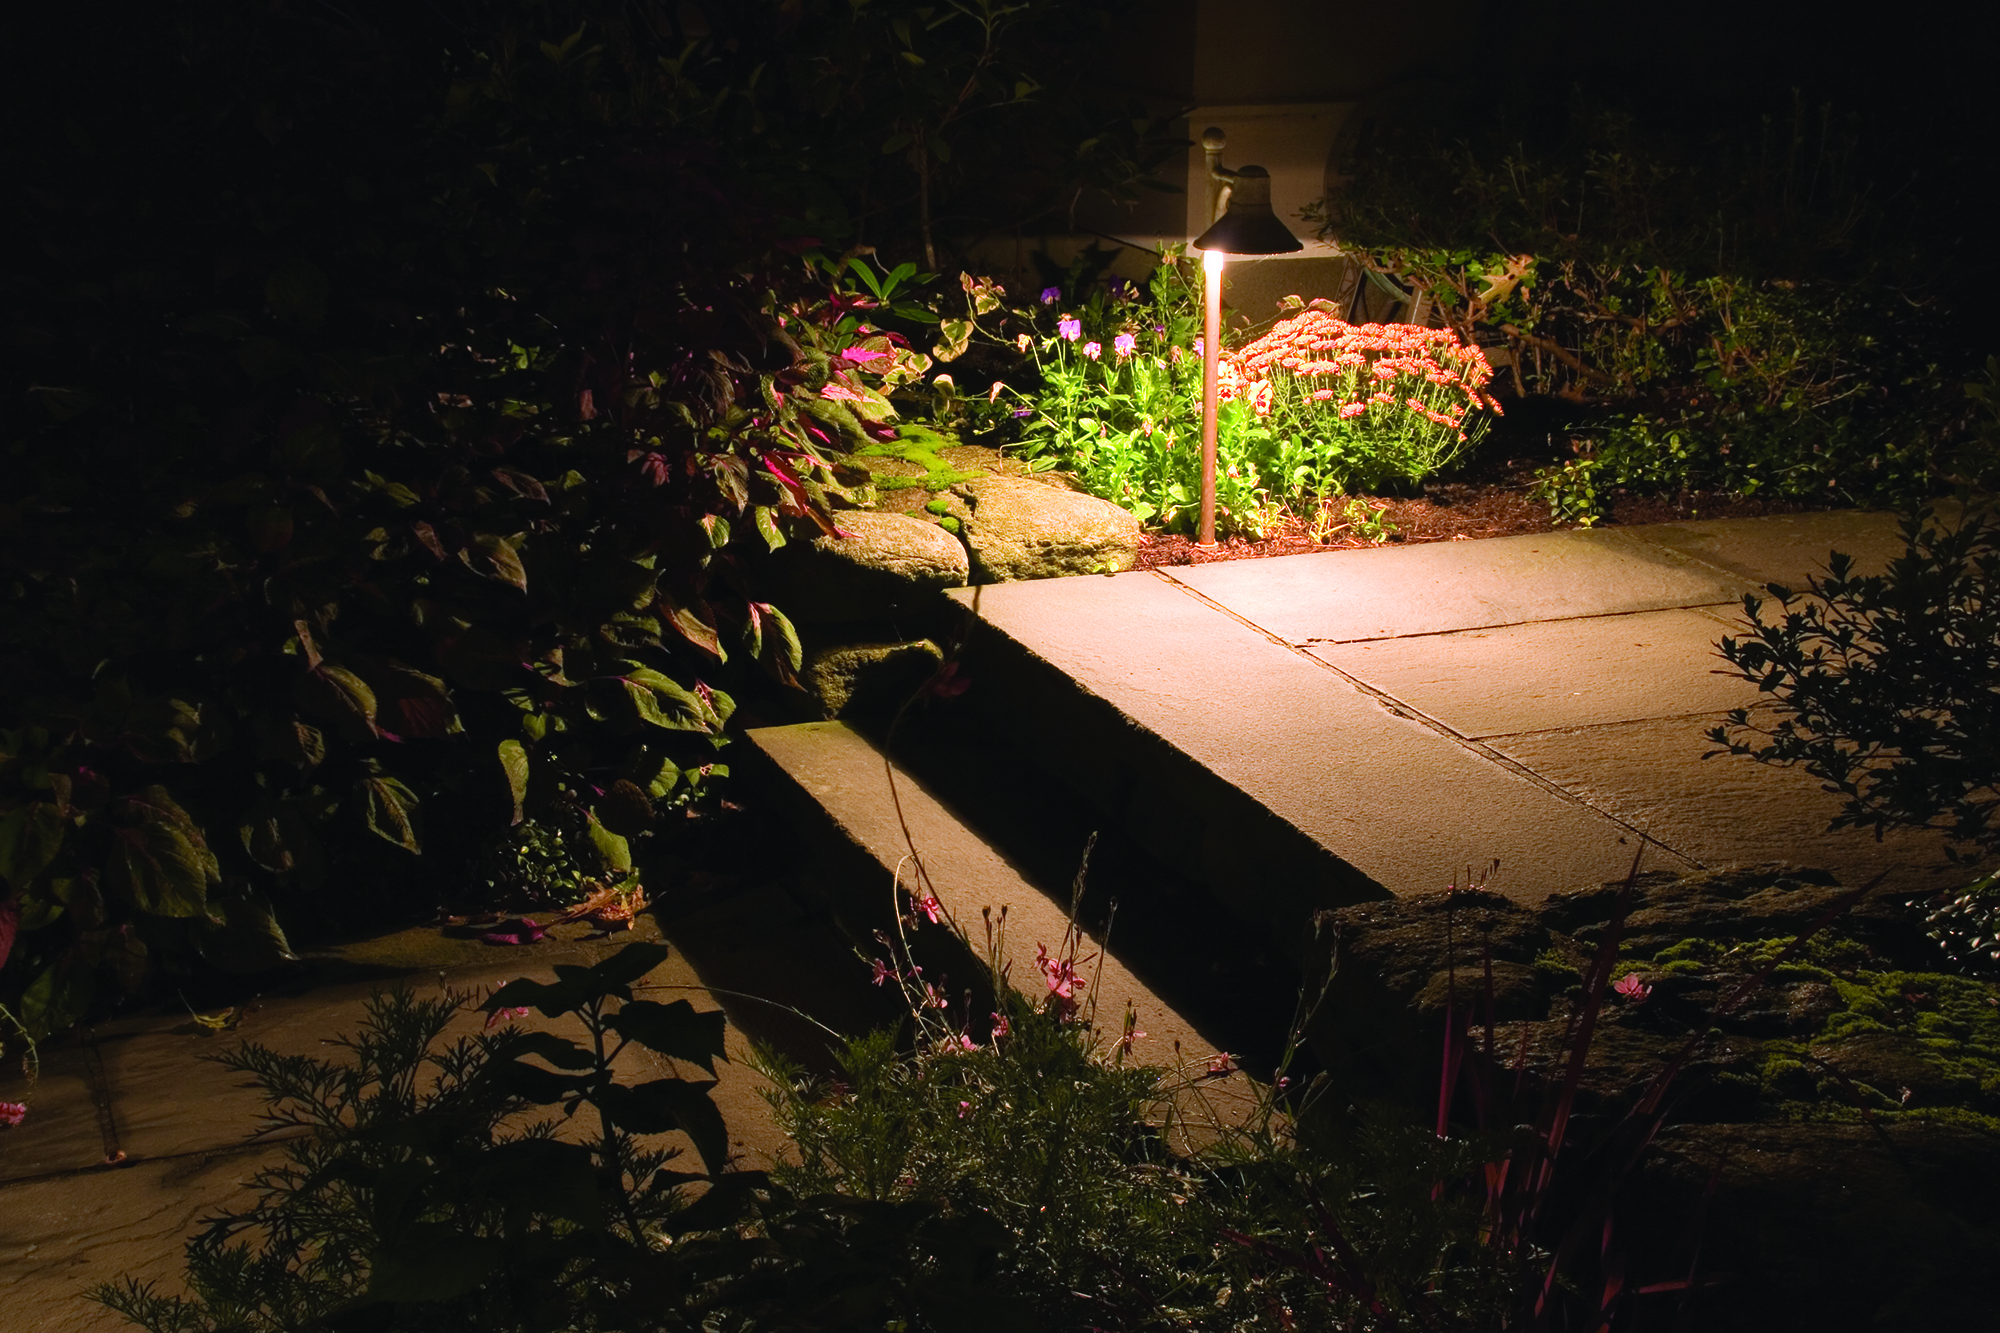 Harmony Hill Landscaping is a certified Landscape Lighting designer/installer in the Hudson Valley, NY.